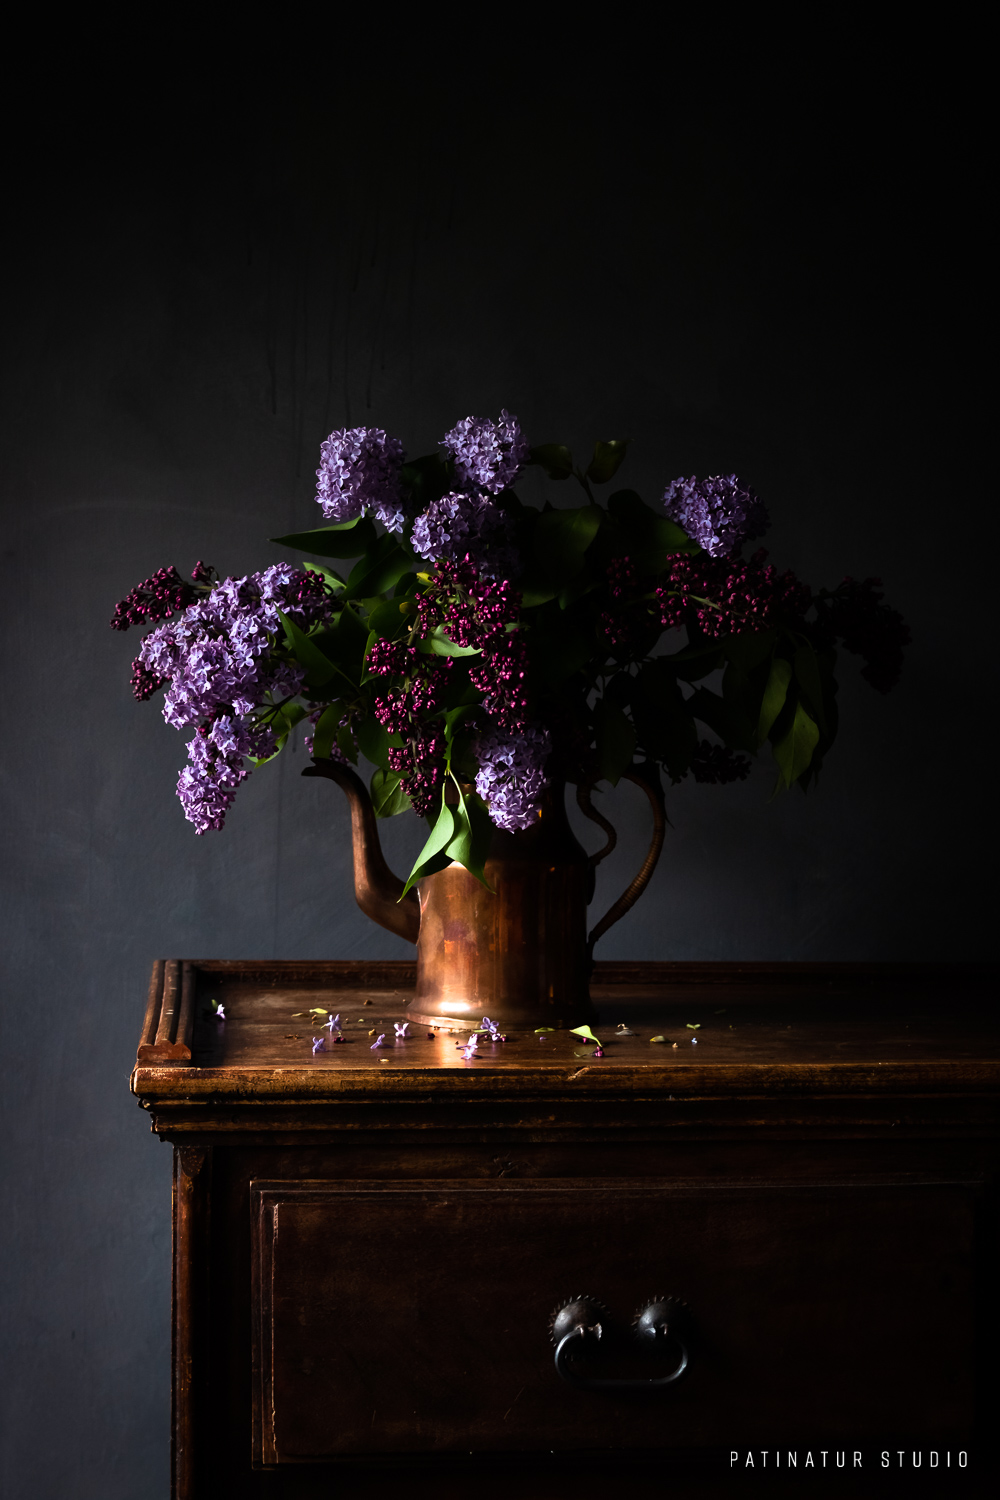 Photo art | Dark and moody still life with lilacs in copper jug